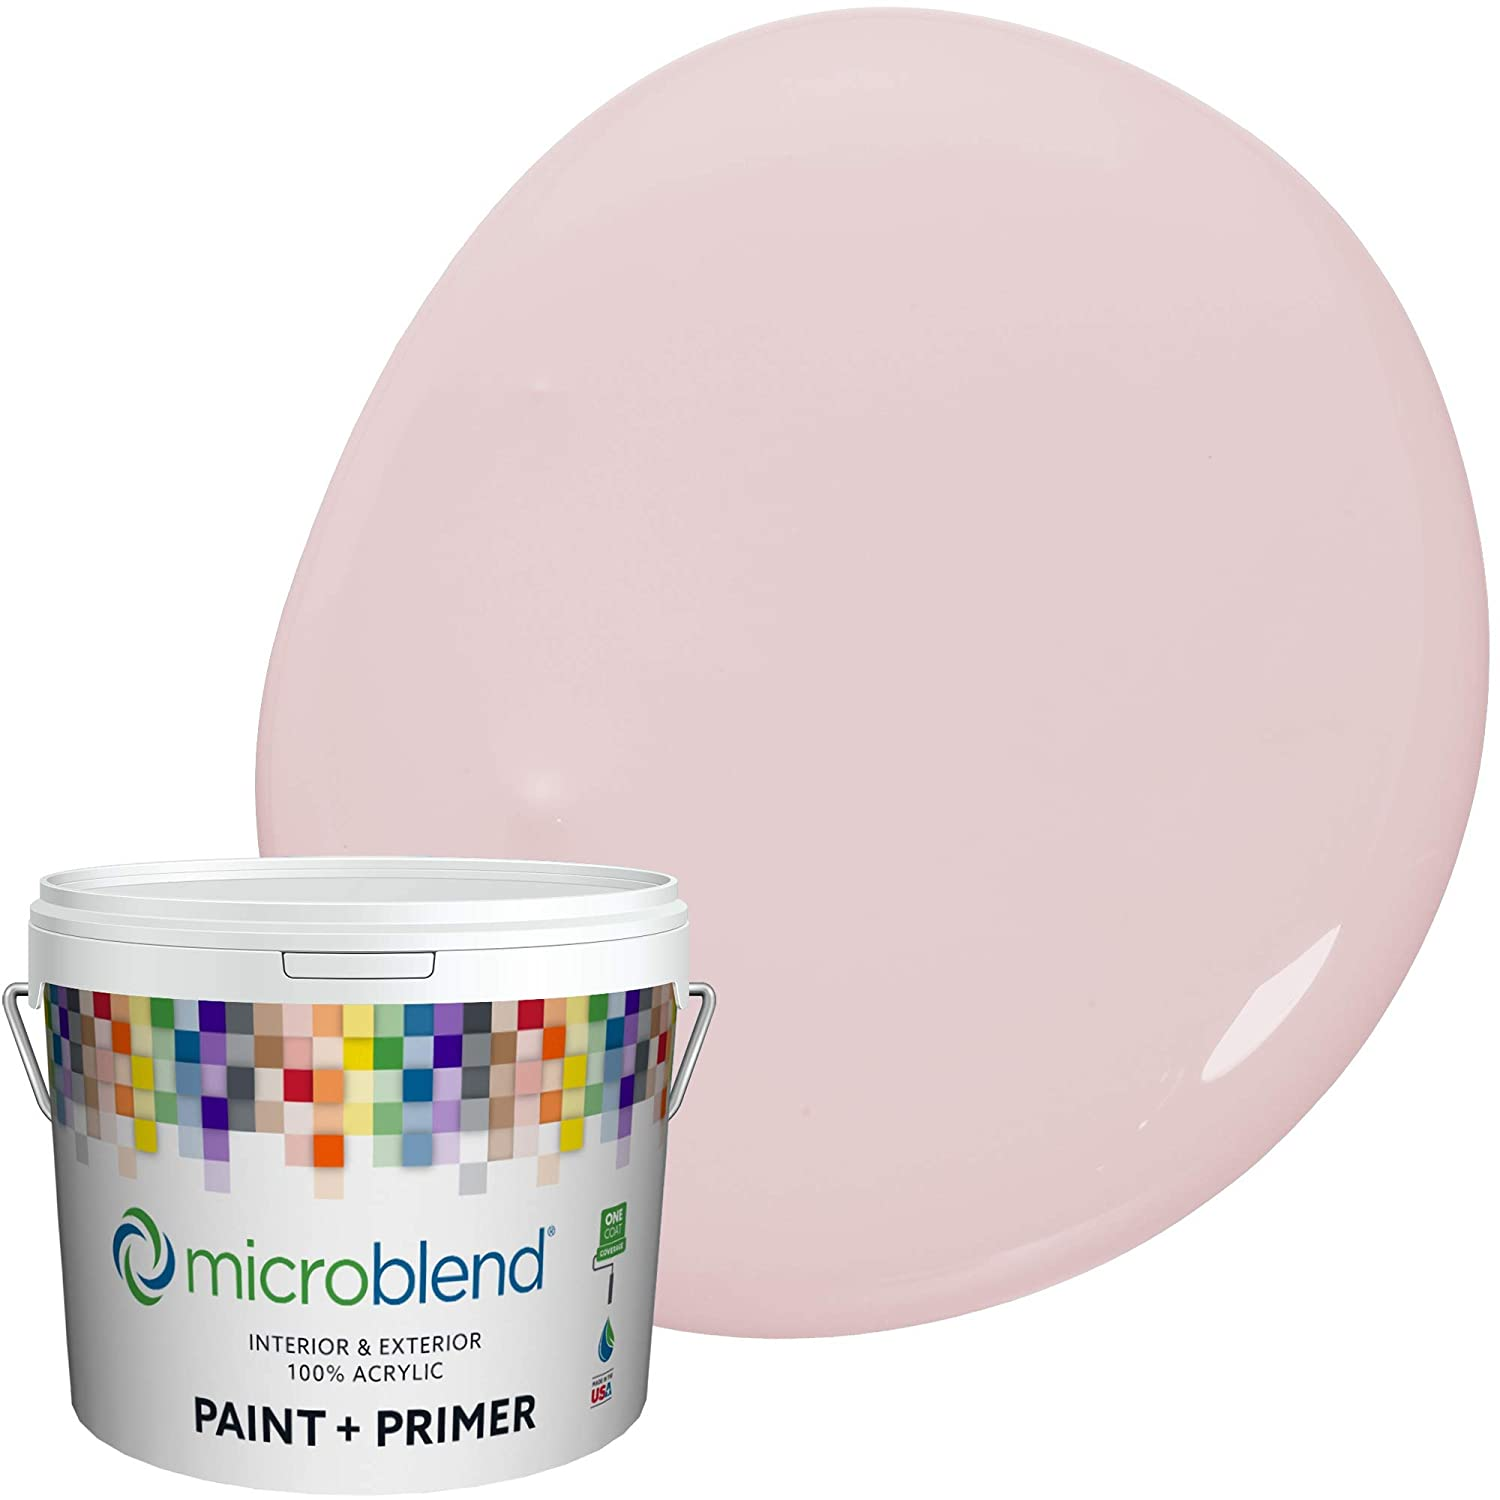 Microblend Interior Paint and Primer - Pink/Putty Pink, Eggshell Sheen, 1-Gallon, Premium Quality, One Coat Hide, Low VOC, Washable, Microblend Violets Family